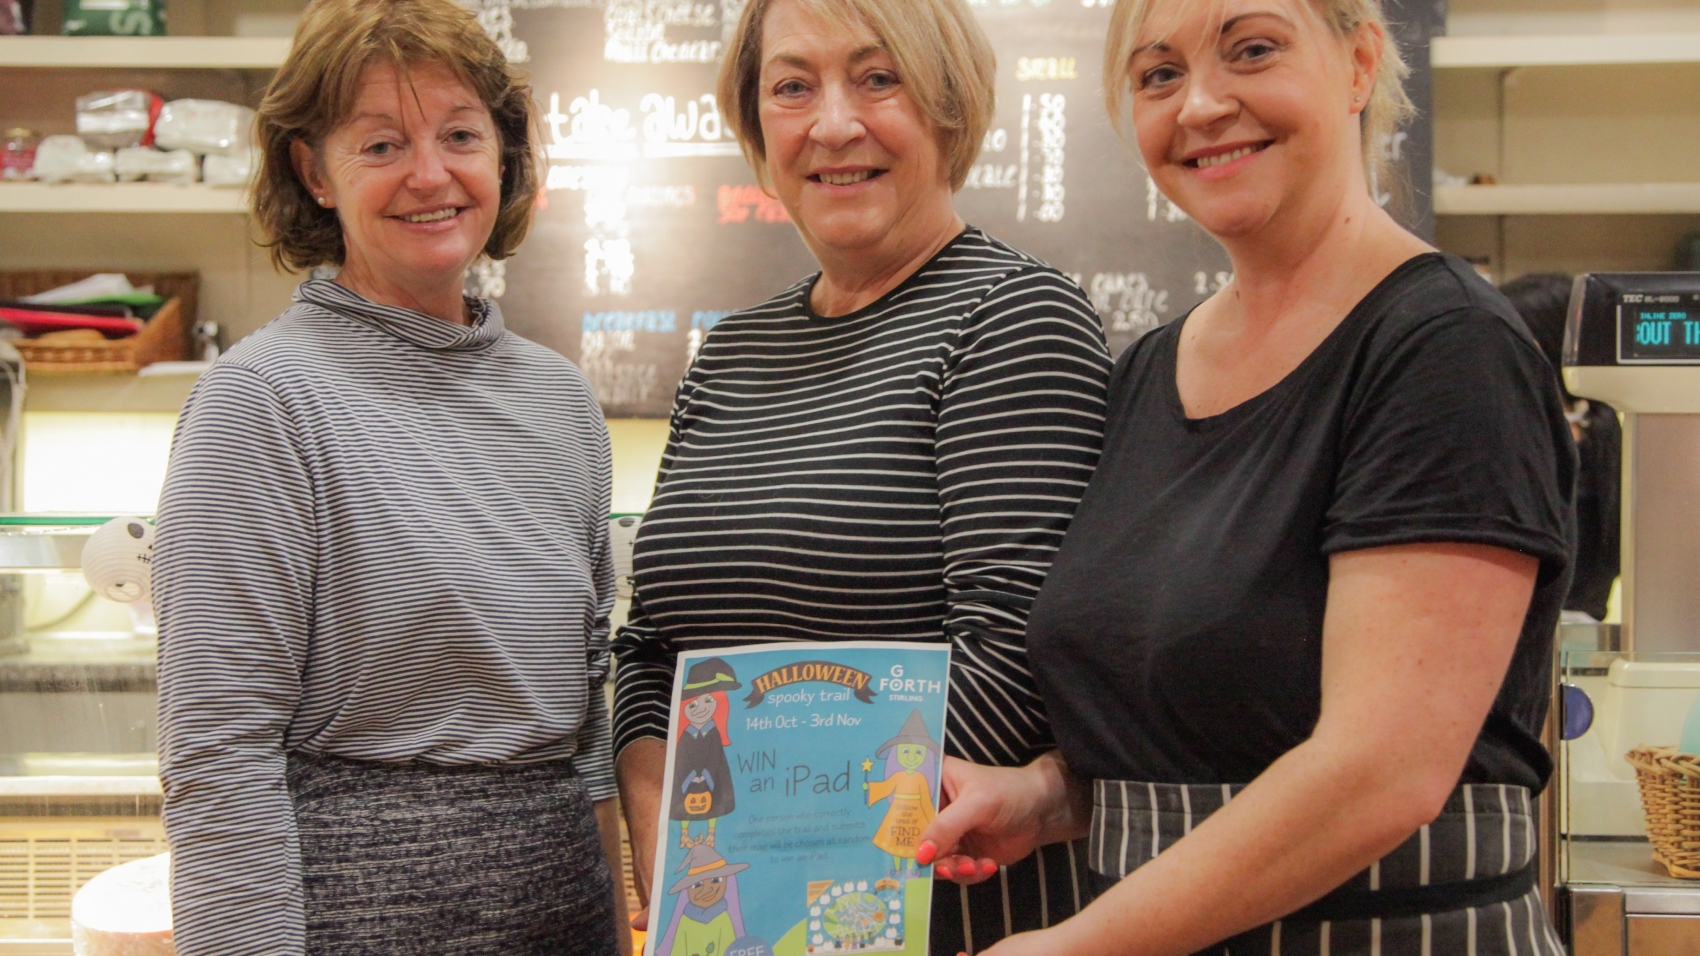 Getting Ready for The Halloween Trail - Go Forth Stirling Manager Mags Fenner with Irene Williams and Leanne Wilson who run The Pend Cafe (left to right)